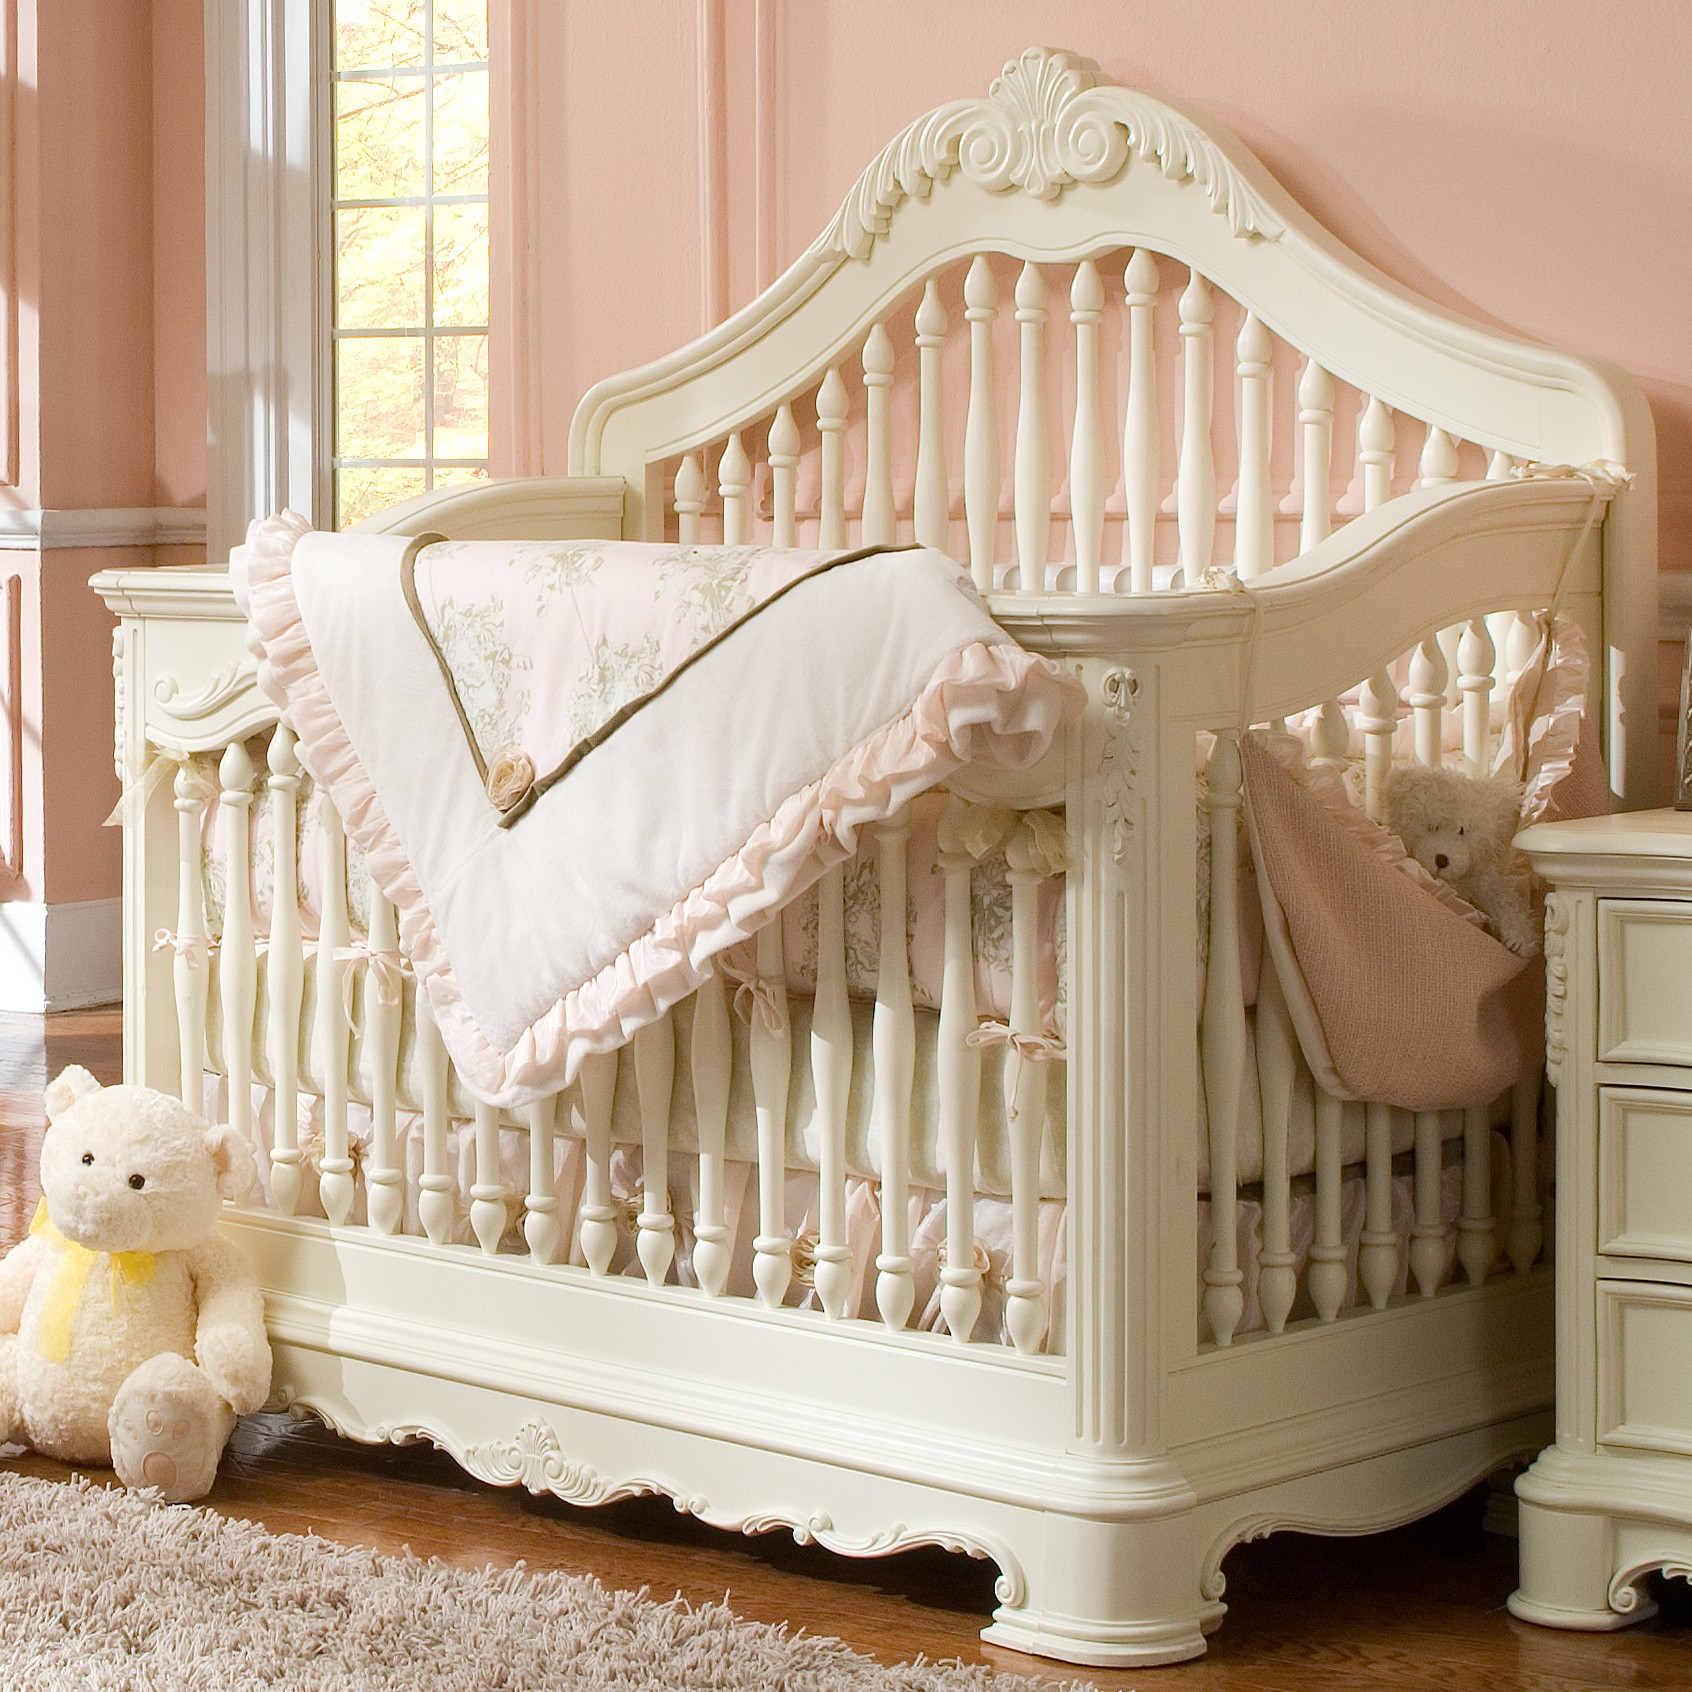 Crib for sale sears - Download